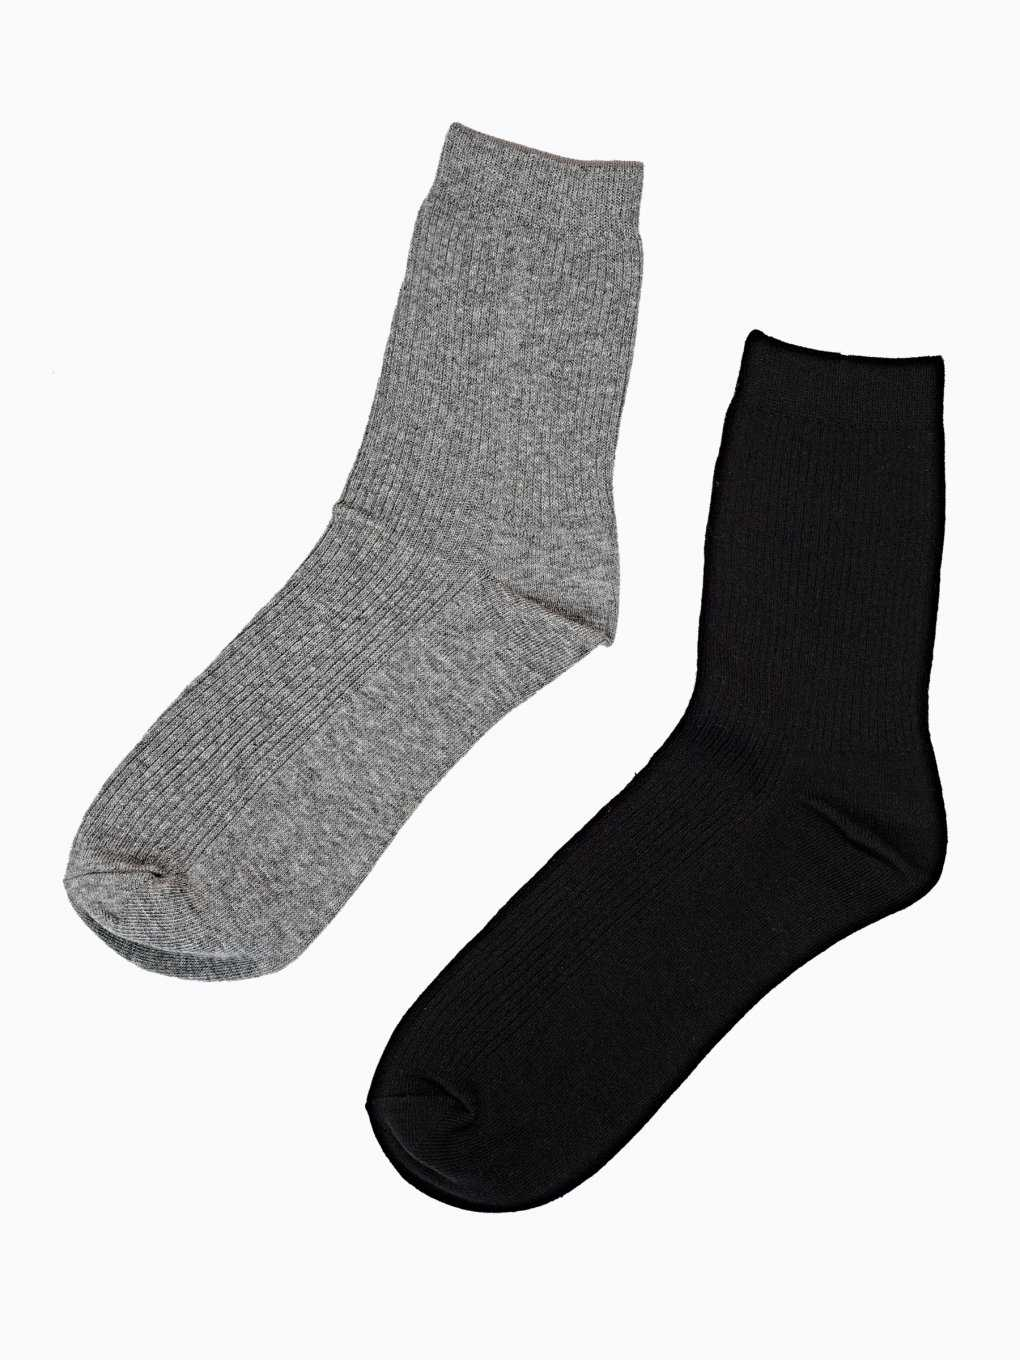 2-pack basic crew socks